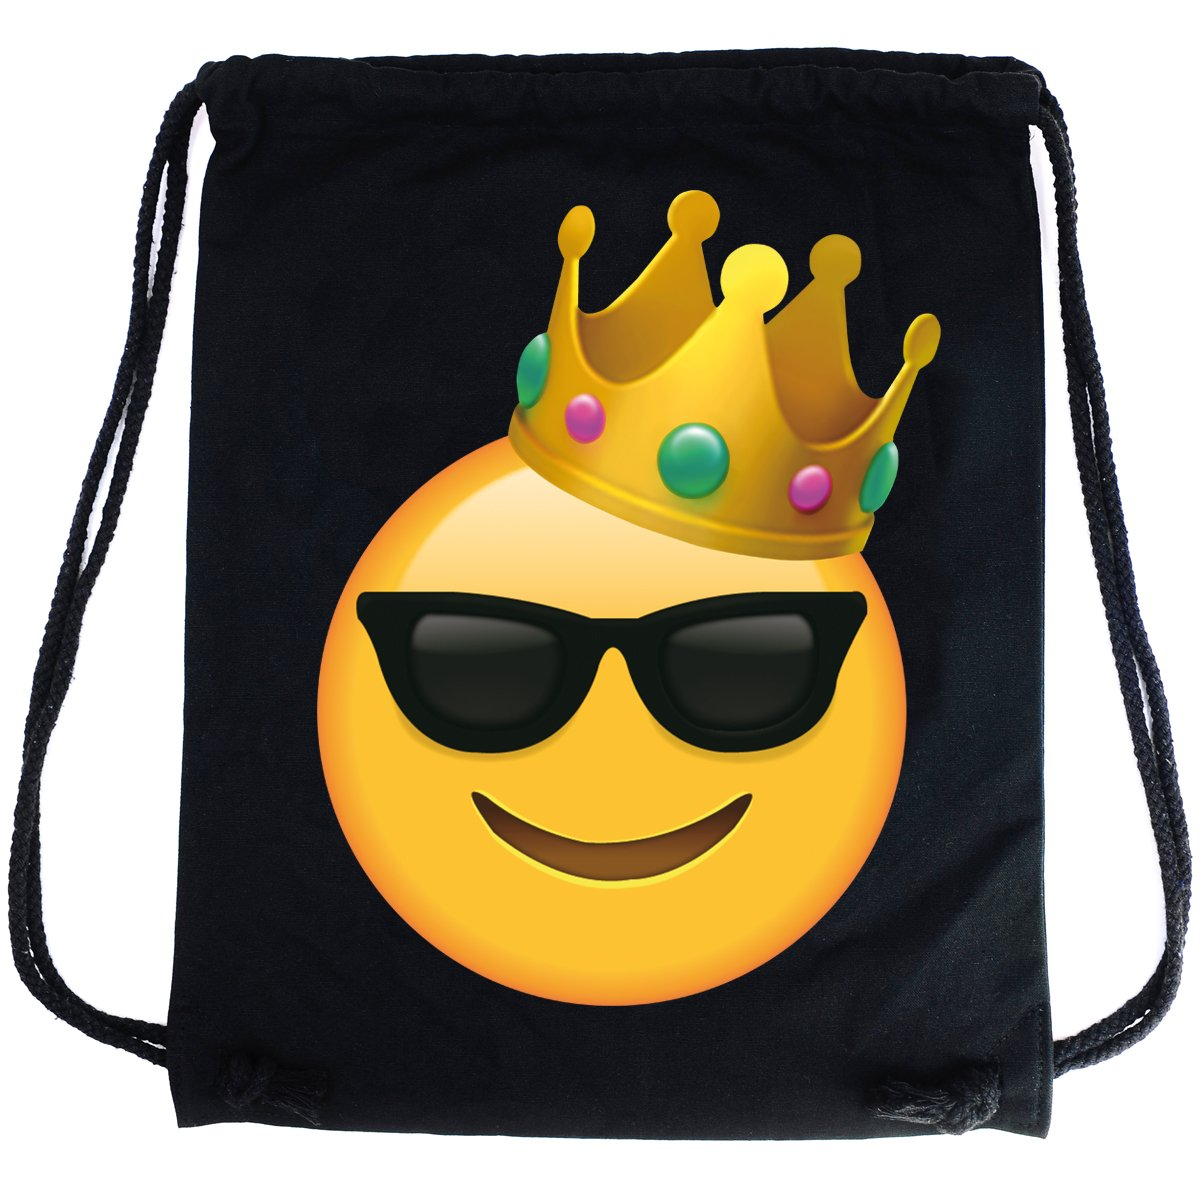 8aceb05d67a0 PREMYO Cotton Drawstring Bag with Smiley Face Sunglasses King Emoji Print  Drawstring Backpack in Black Canvas Gym Bag. On The Go Sackpack Rucksack  for ...